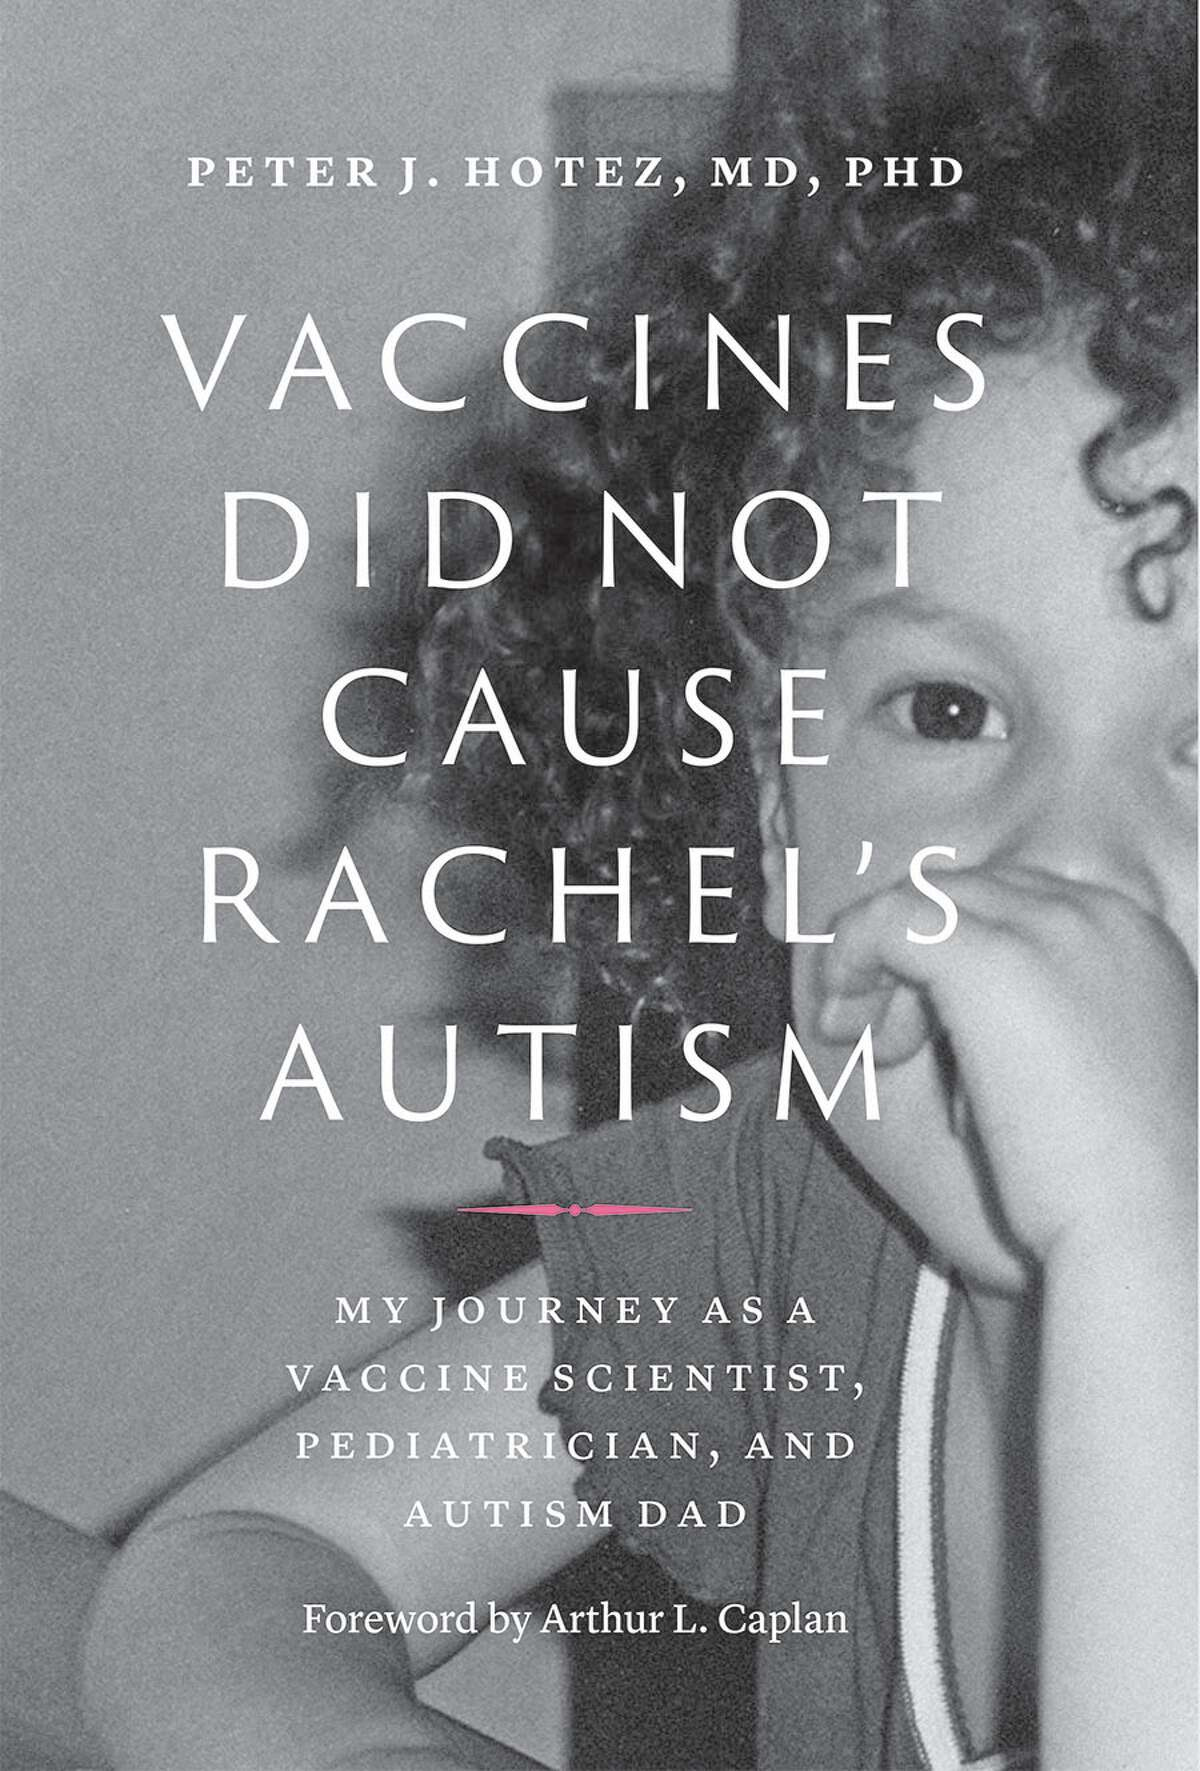 Dr. Hotez hopes the new book will remind parents (and their pediatricians) why vaccines are safe and essential.